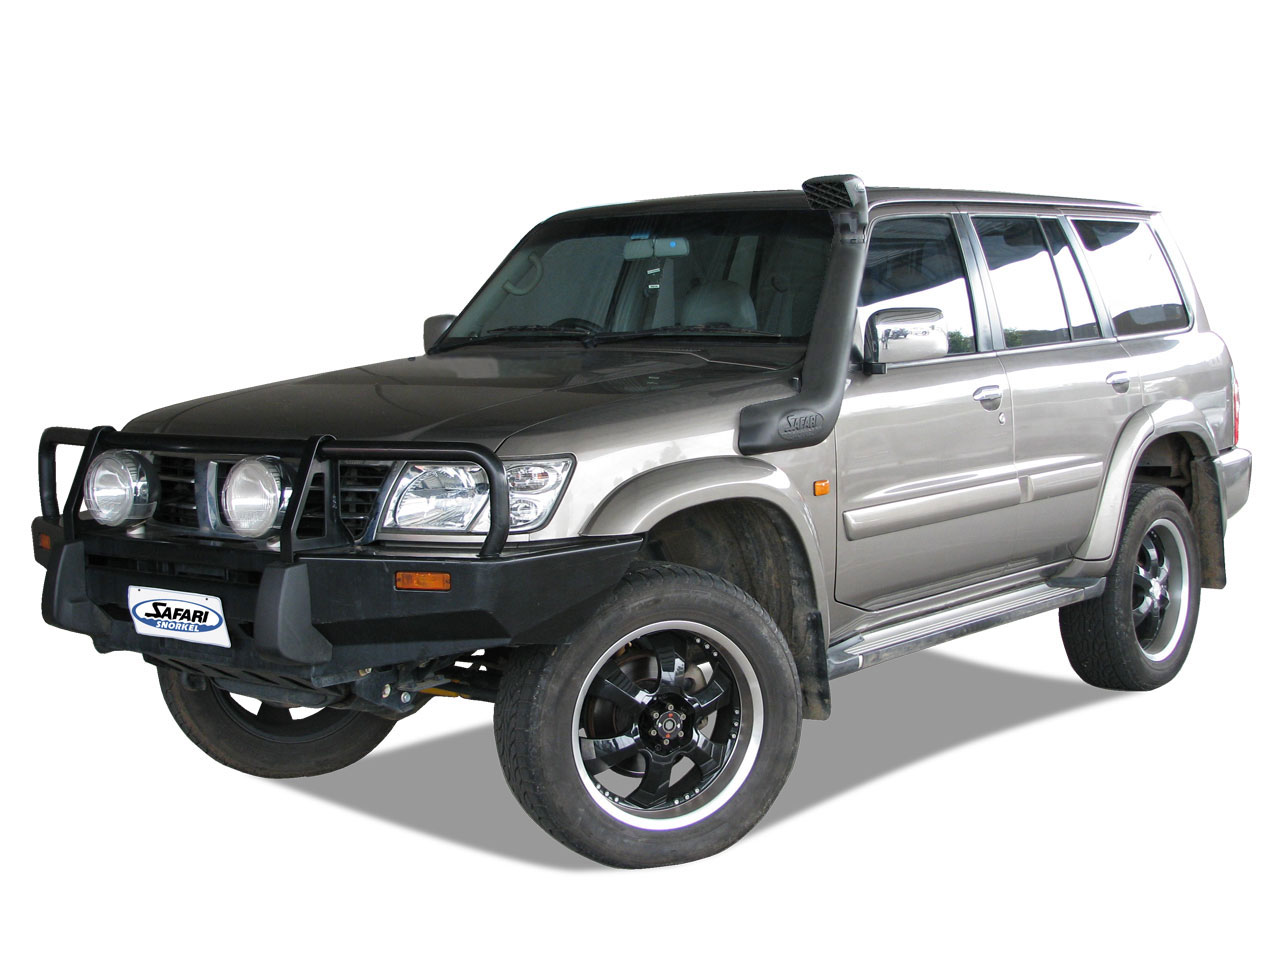 safari snorkel system for the nissan patrol. Black Bedroom Furniture Sets. Home Design Ideas